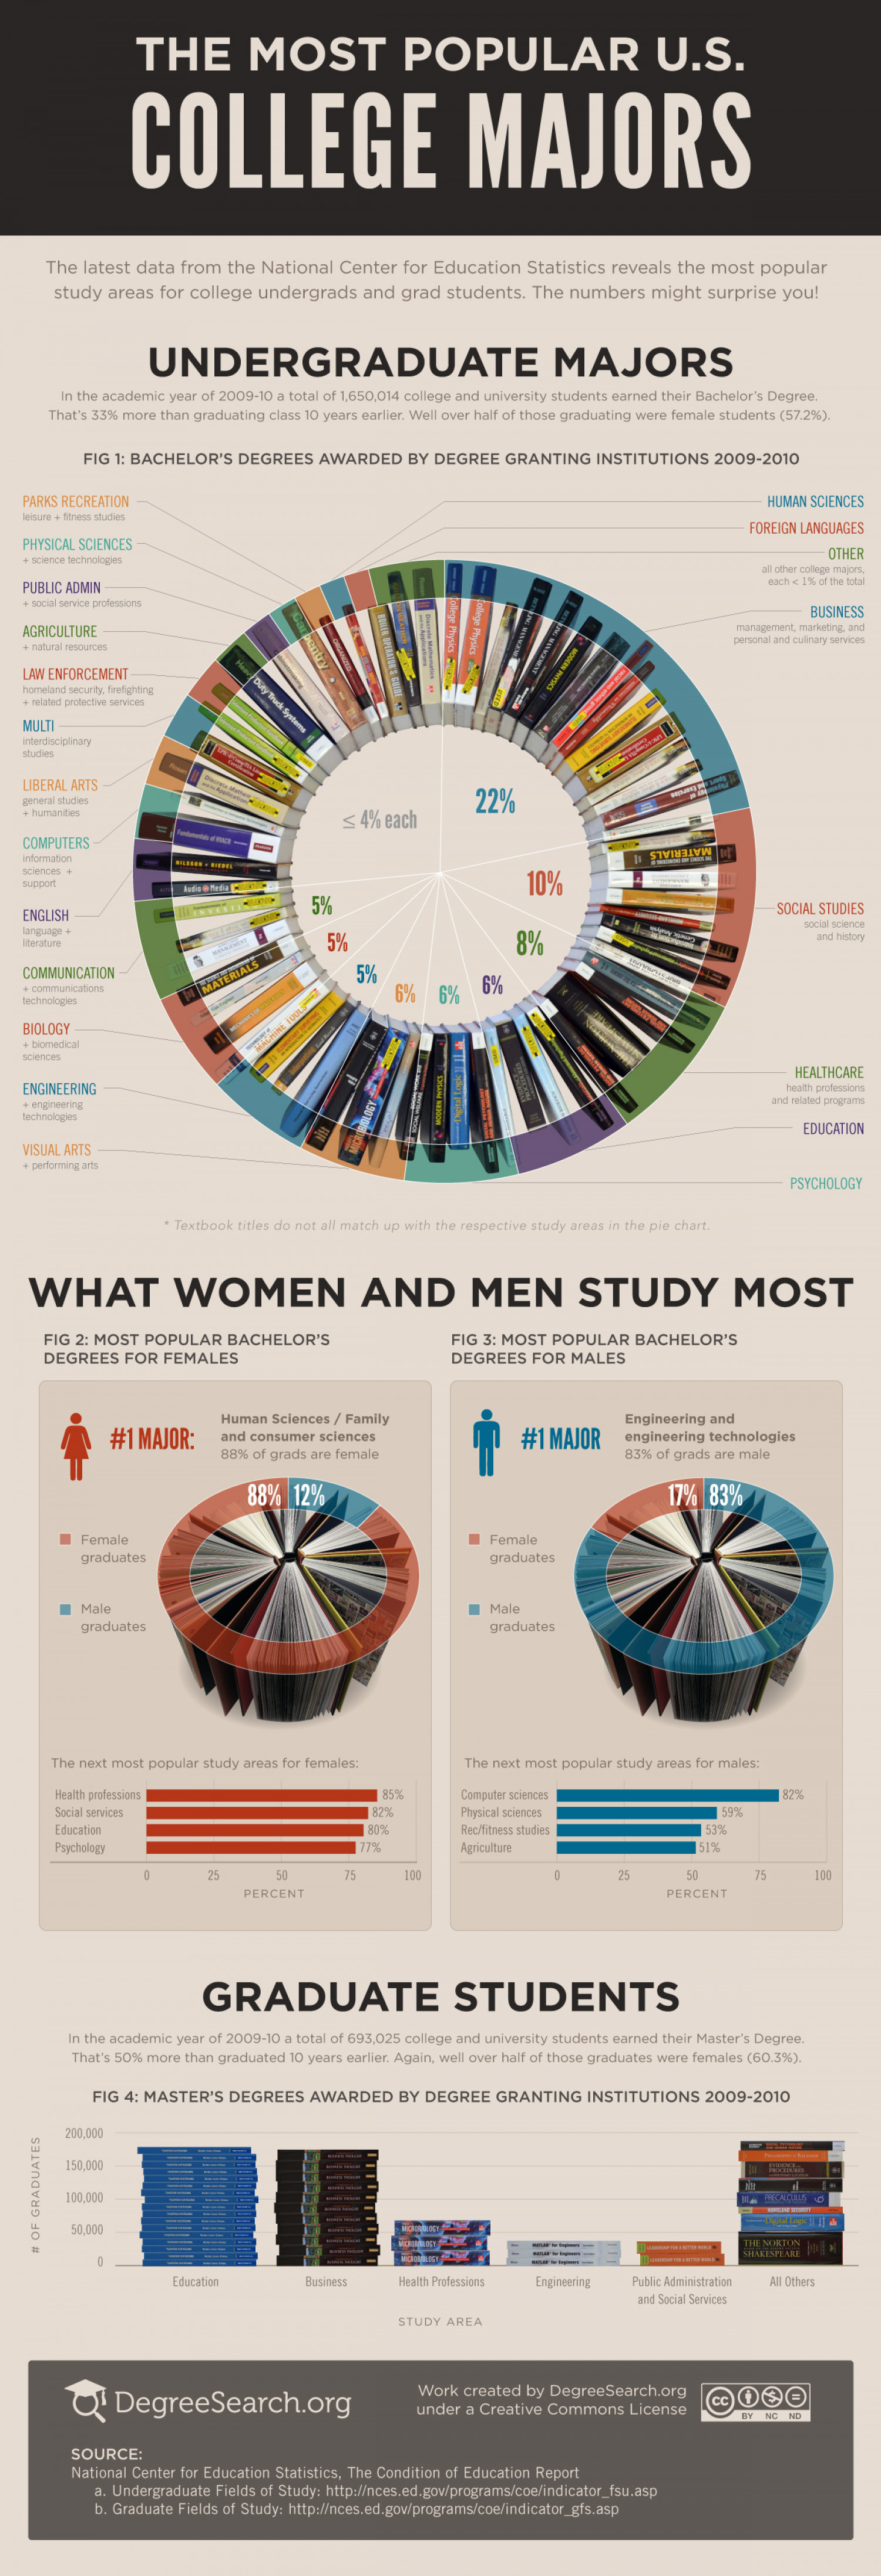 The Most Popular College Majors 2012 Infographic